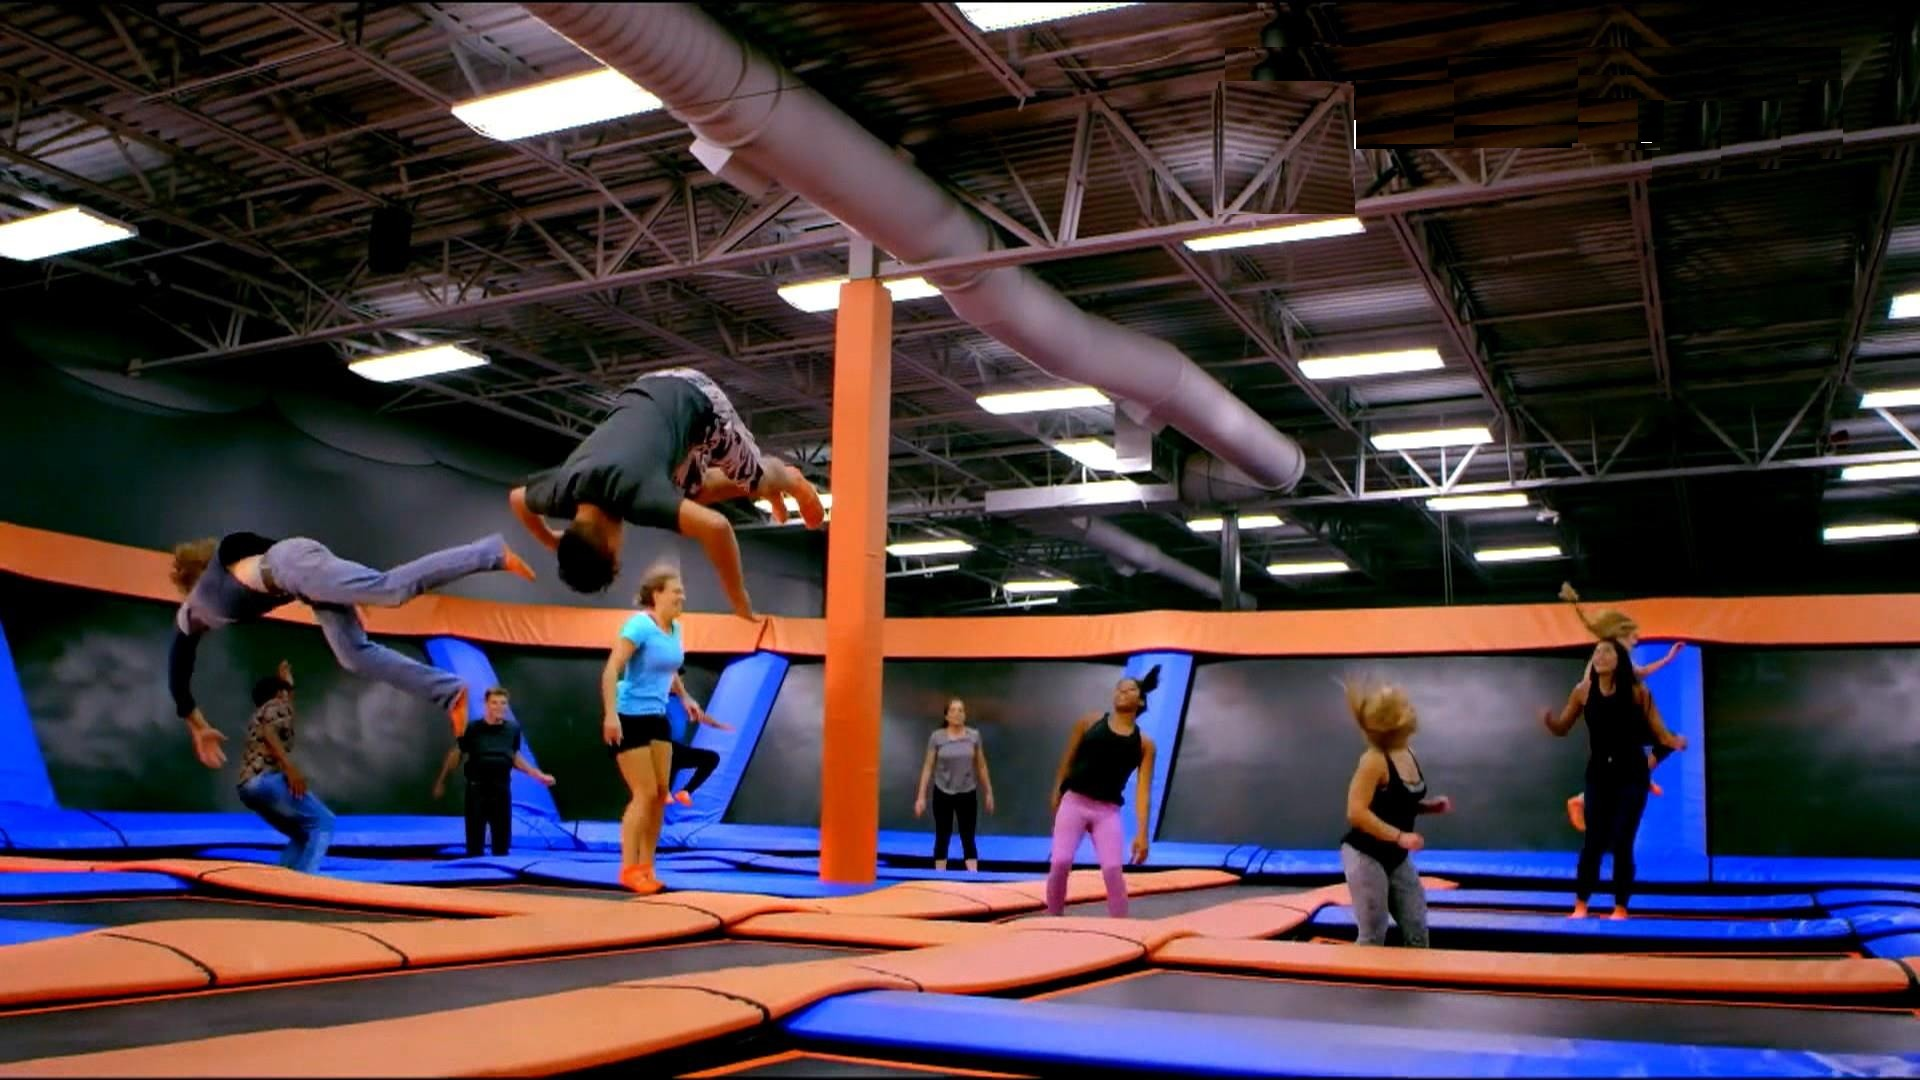 Youth Ministry Trampoline Park